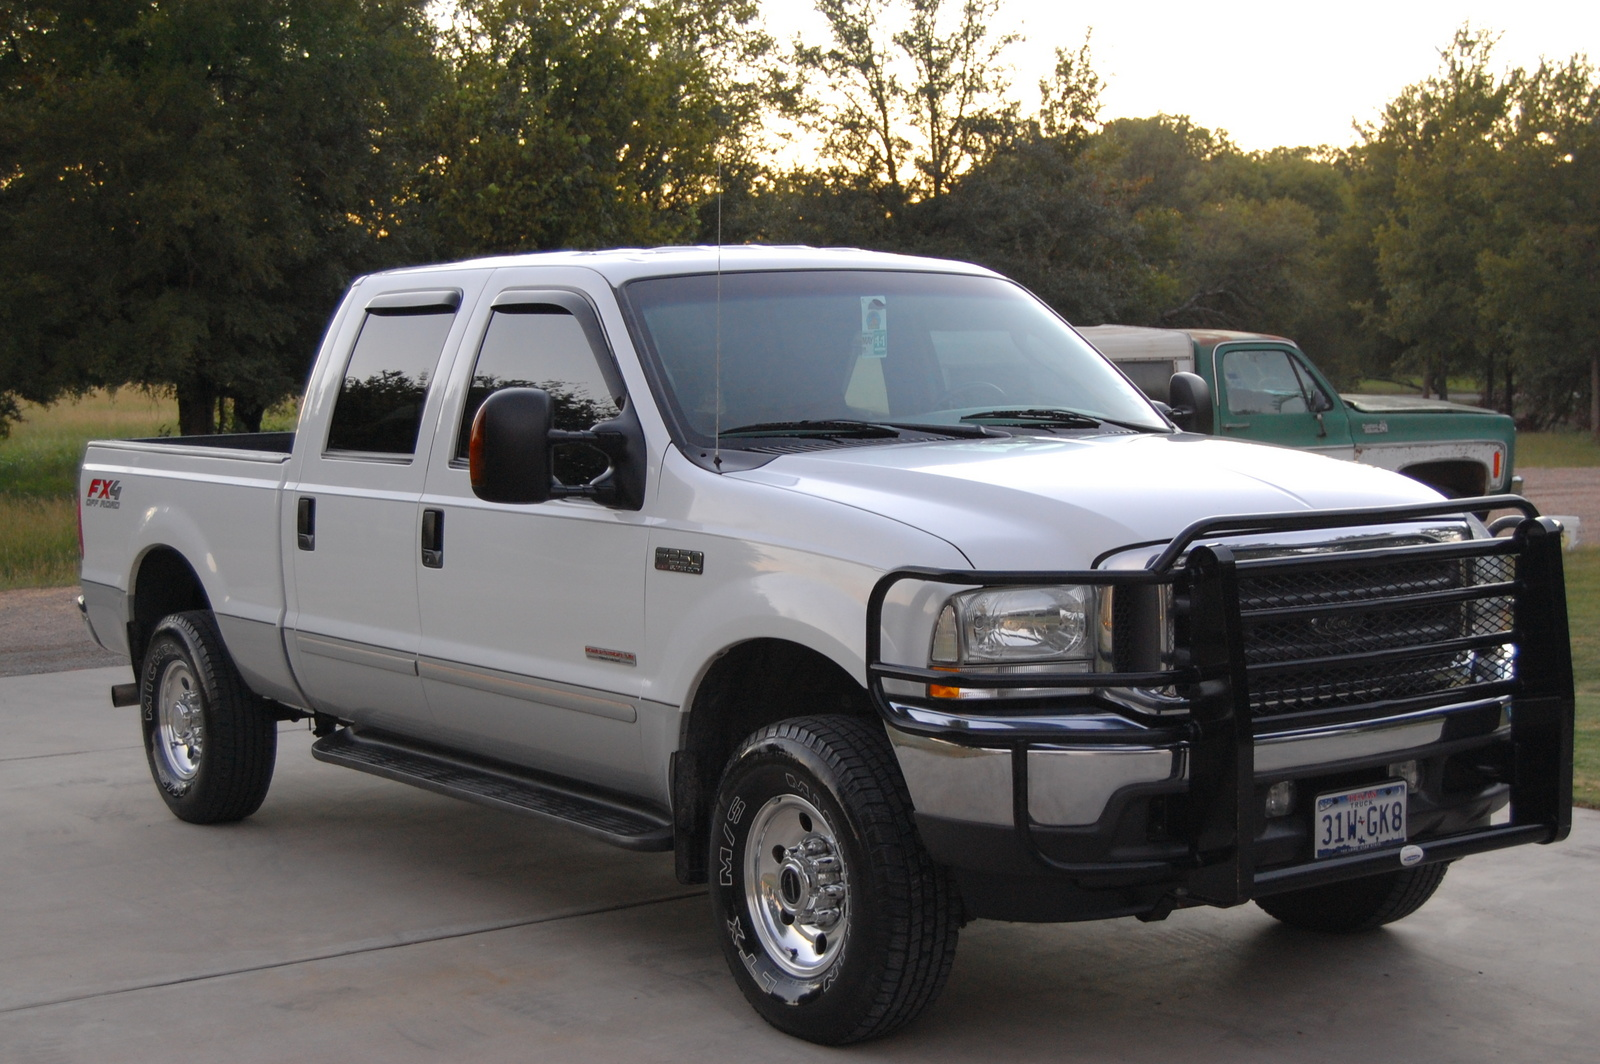 2004 Ford F-250 Super Duty - Pictures